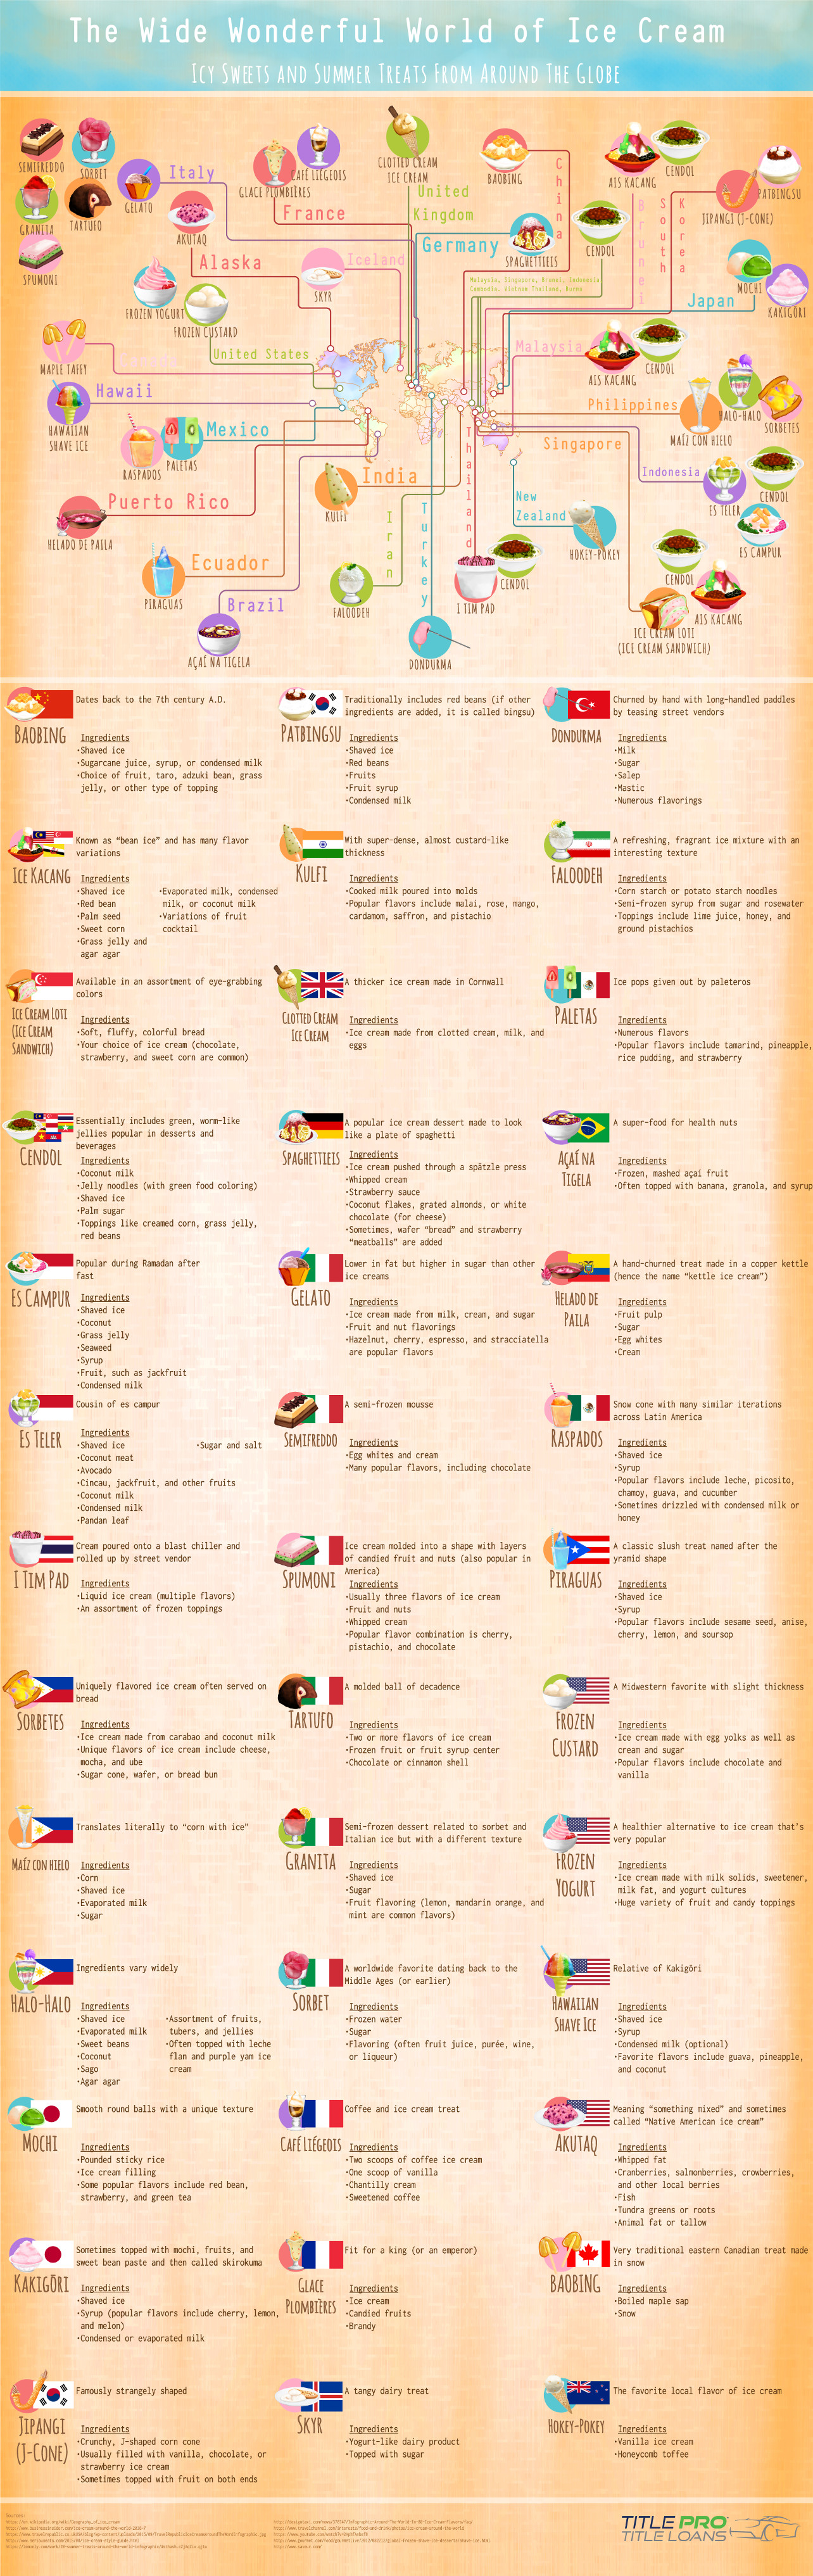 Ice Cream Flavors Around The World - Infographic